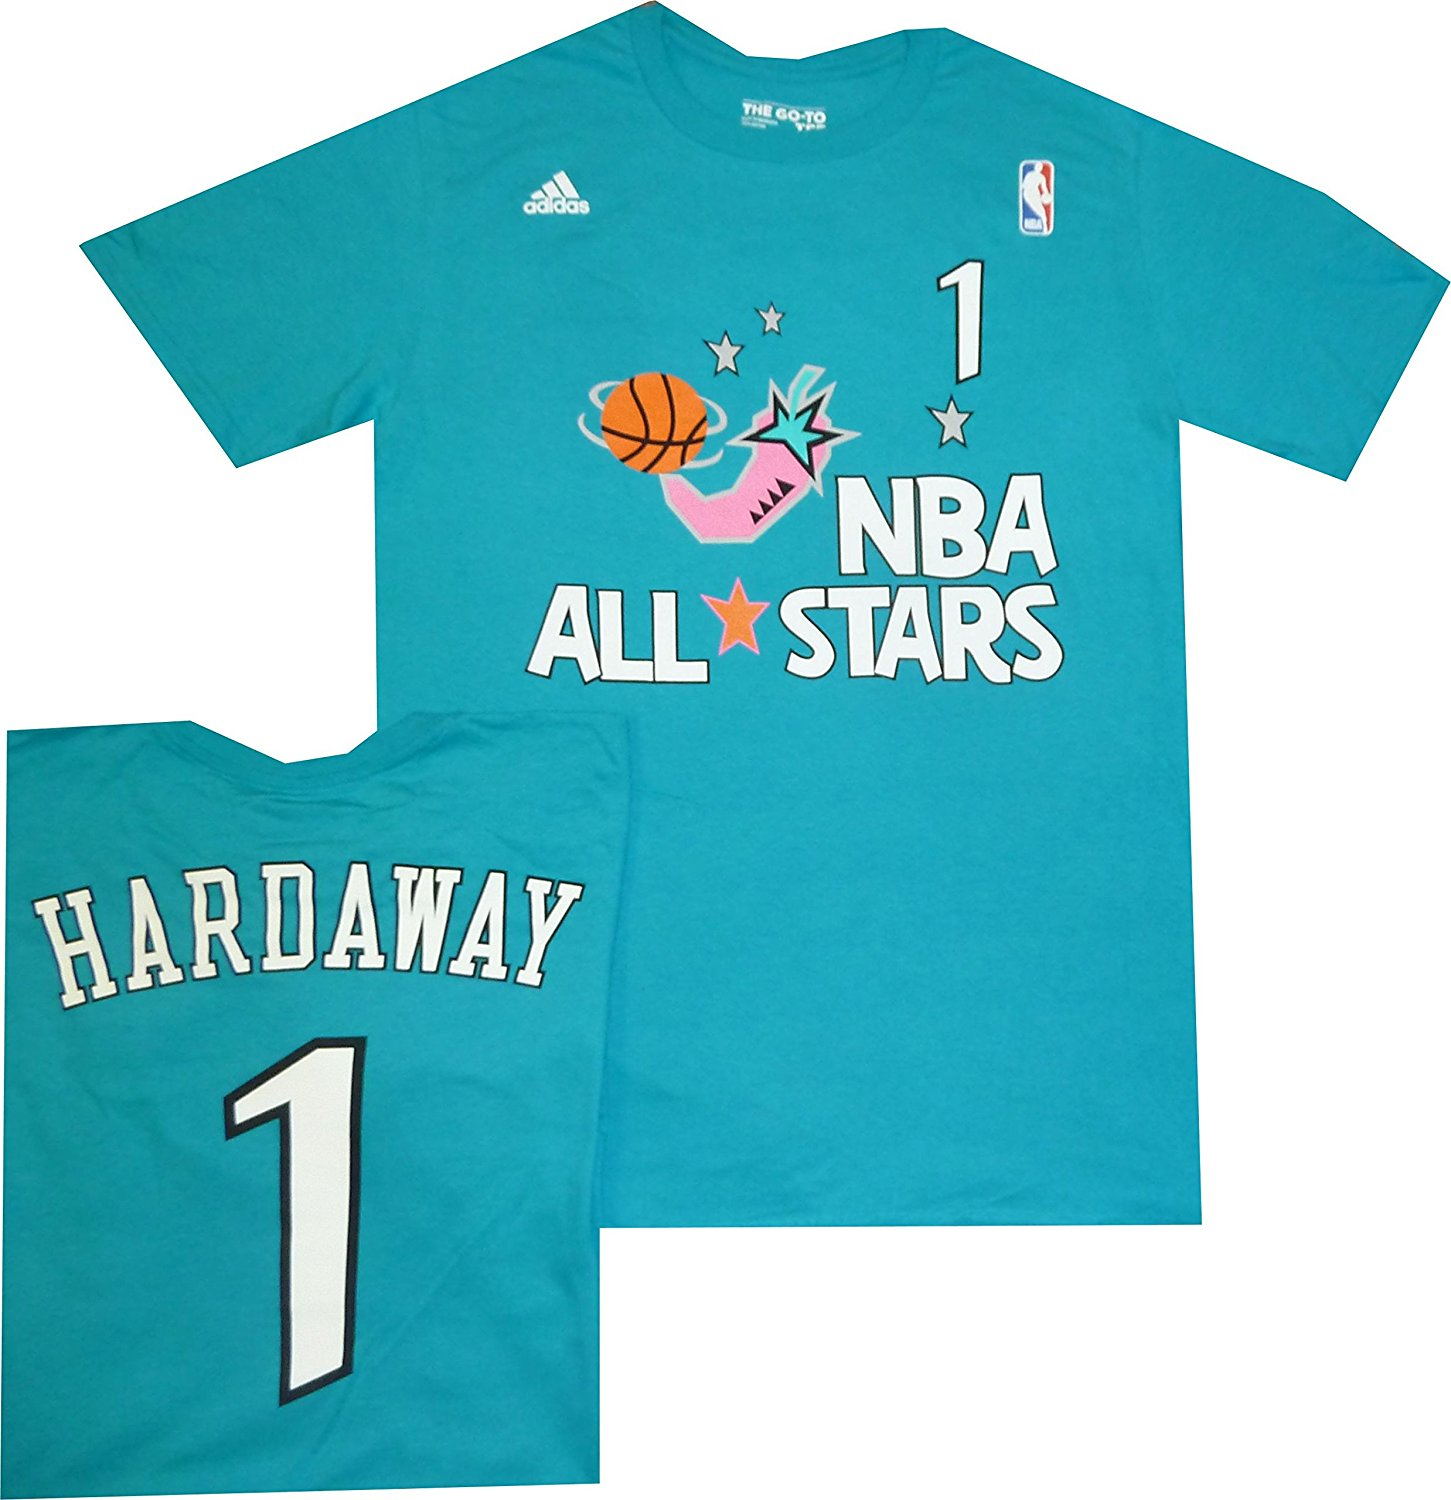 ffb3b176d1f Orlando Magic Anfernee Penny Hardaway All Star 1996 Teal Blue T Shirt 1996